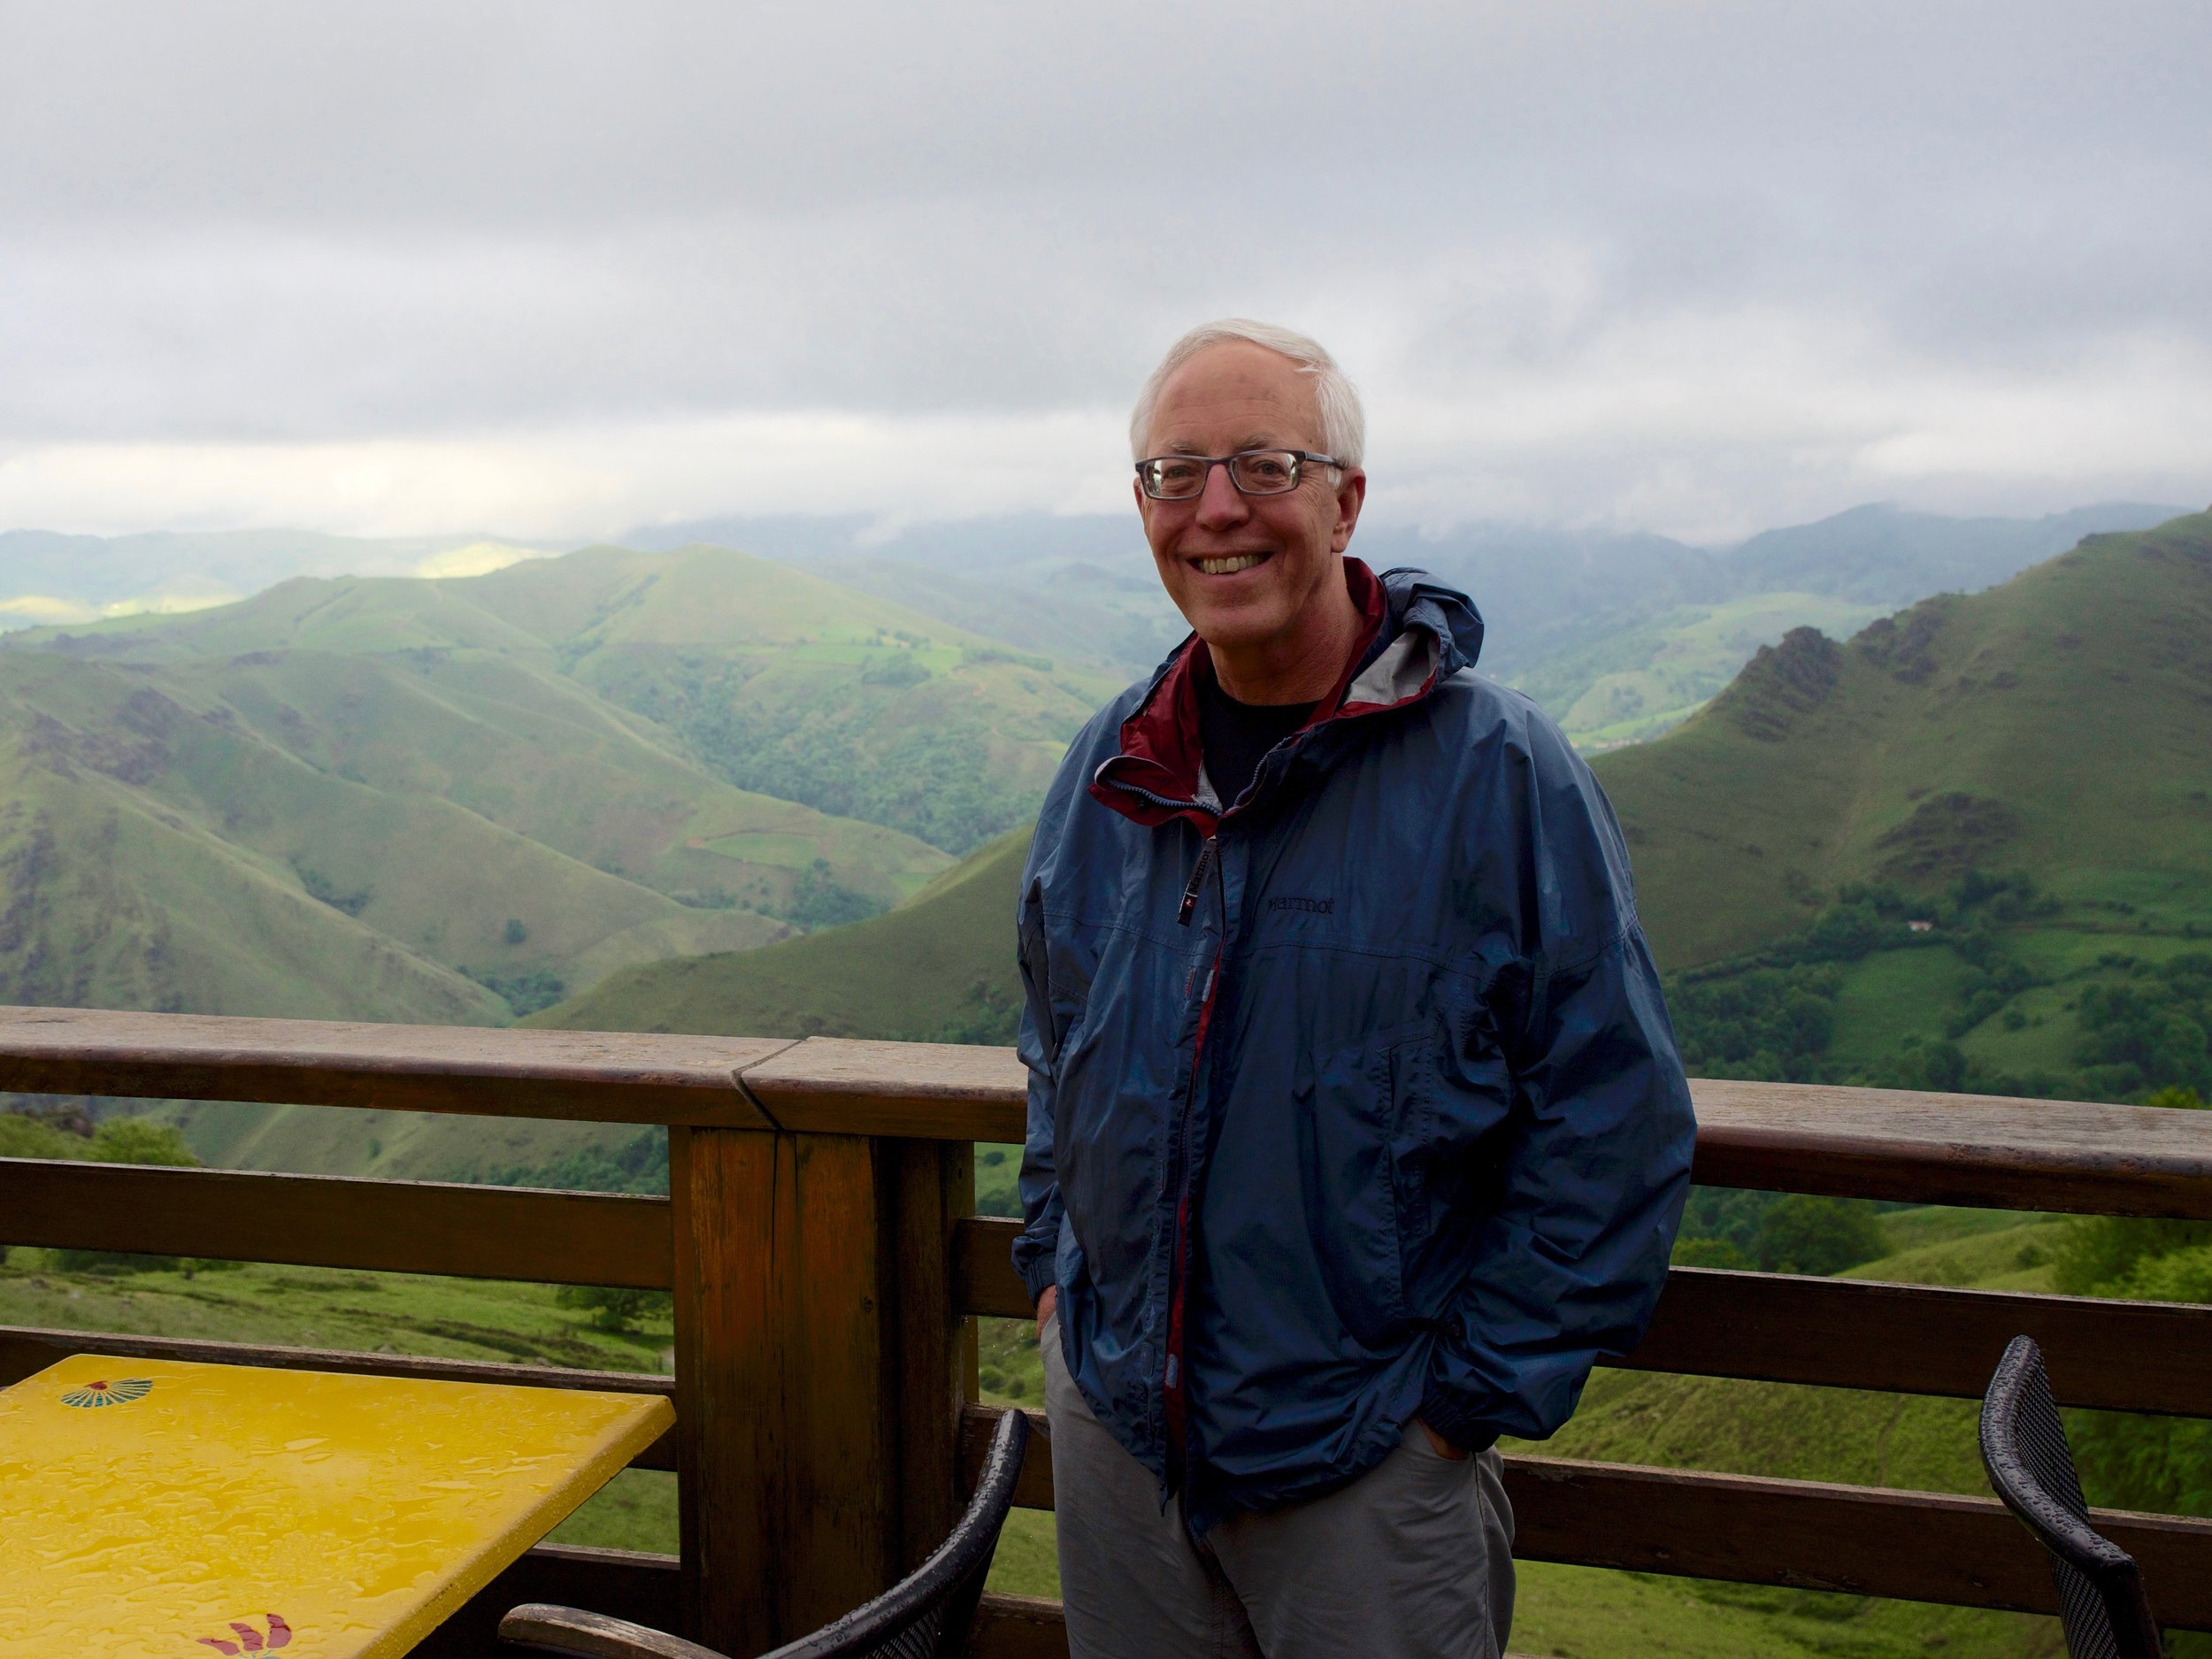 Our teammate wearing his Marmot Precip Jacket on a rainy day in Orisson, crossing the Pyrenees.